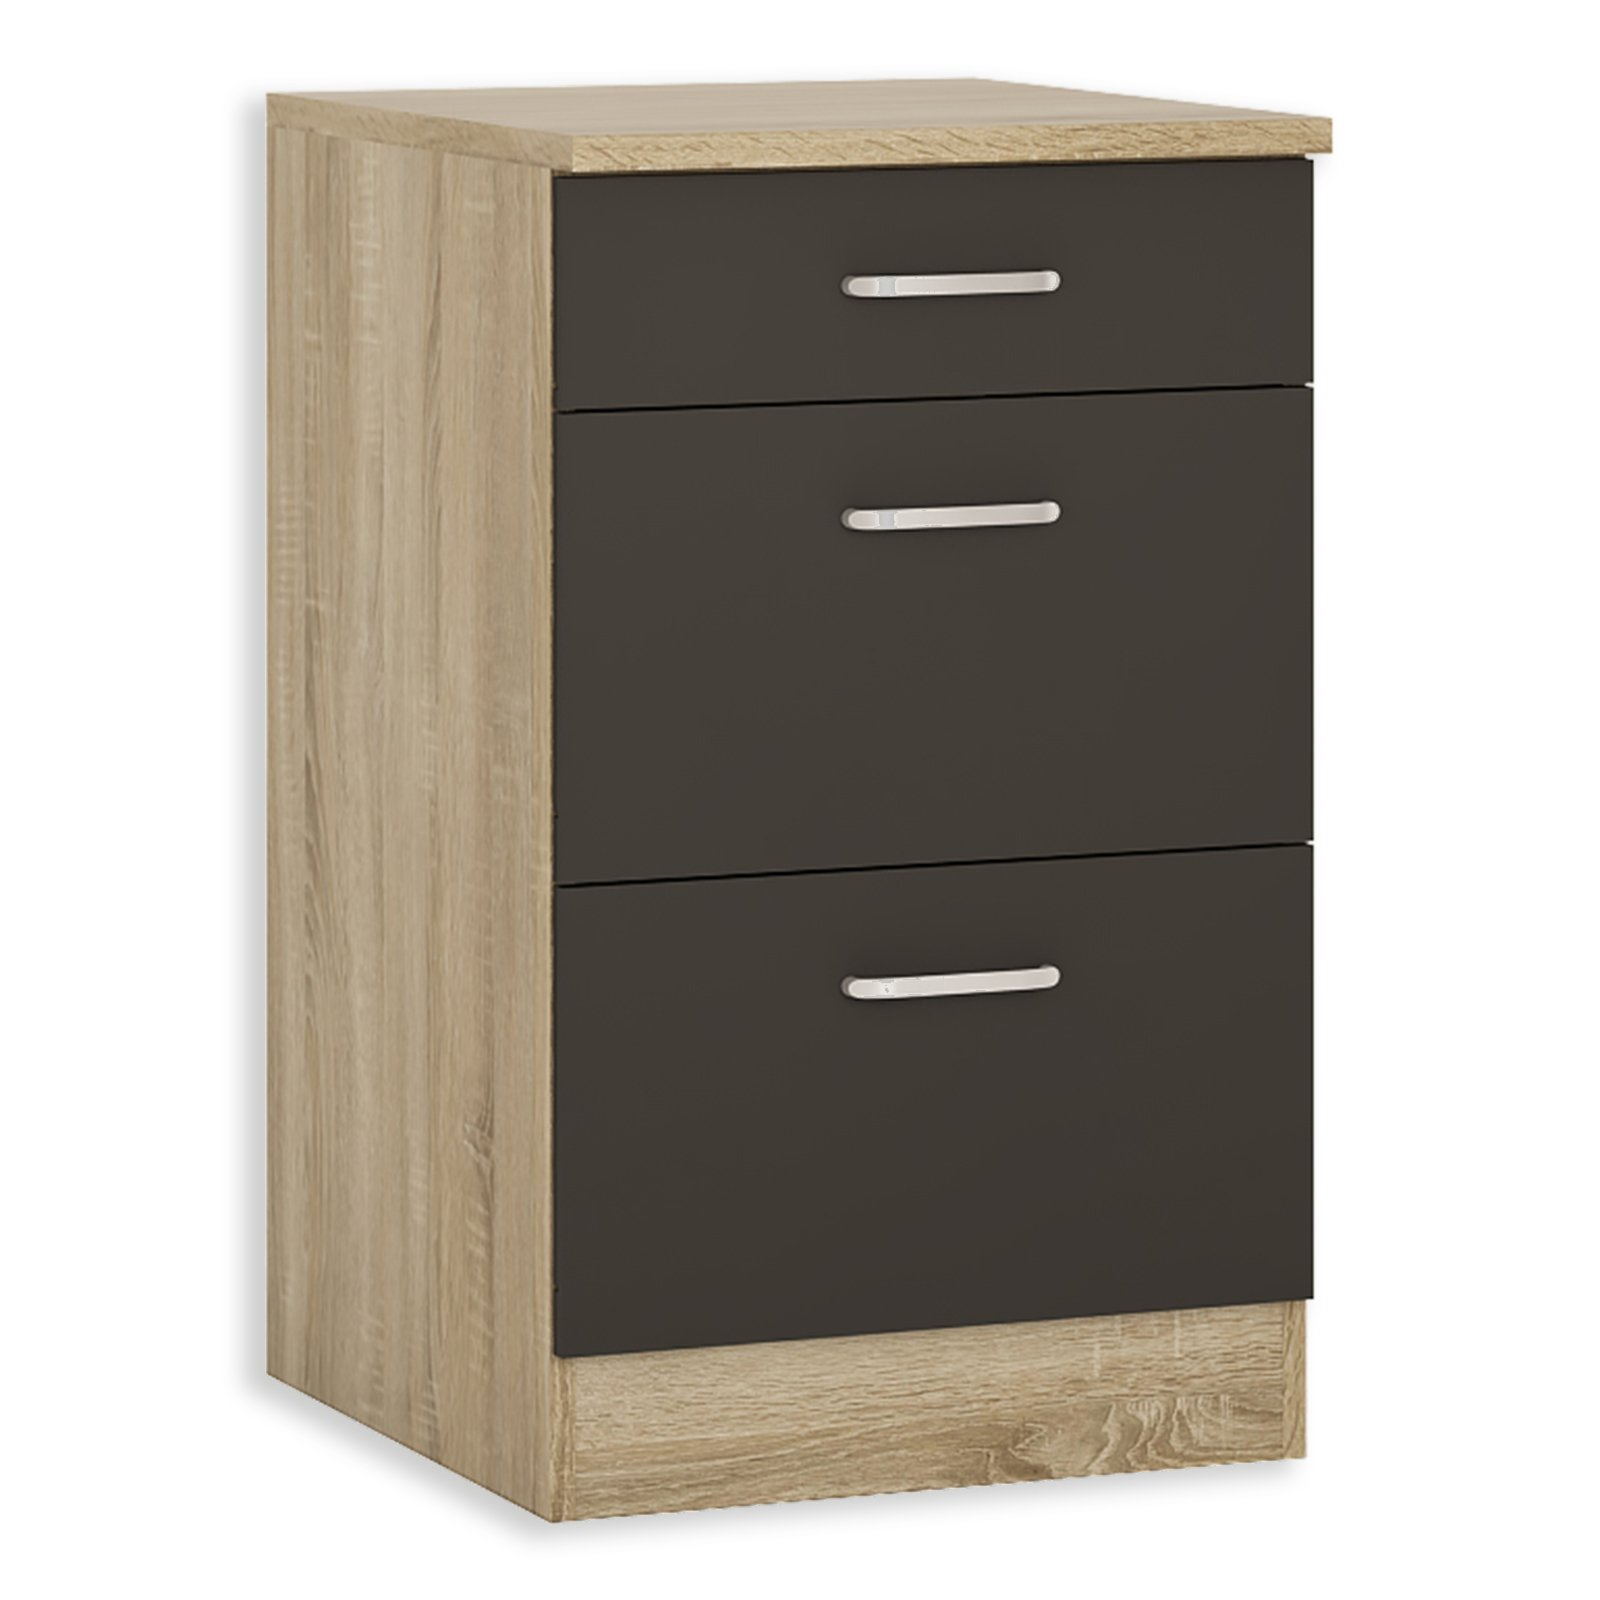 unterschrank fox anthrazit sonoma eiche 50 cm breit. Black Bedroom Furniture Sets. Home Design Ideas